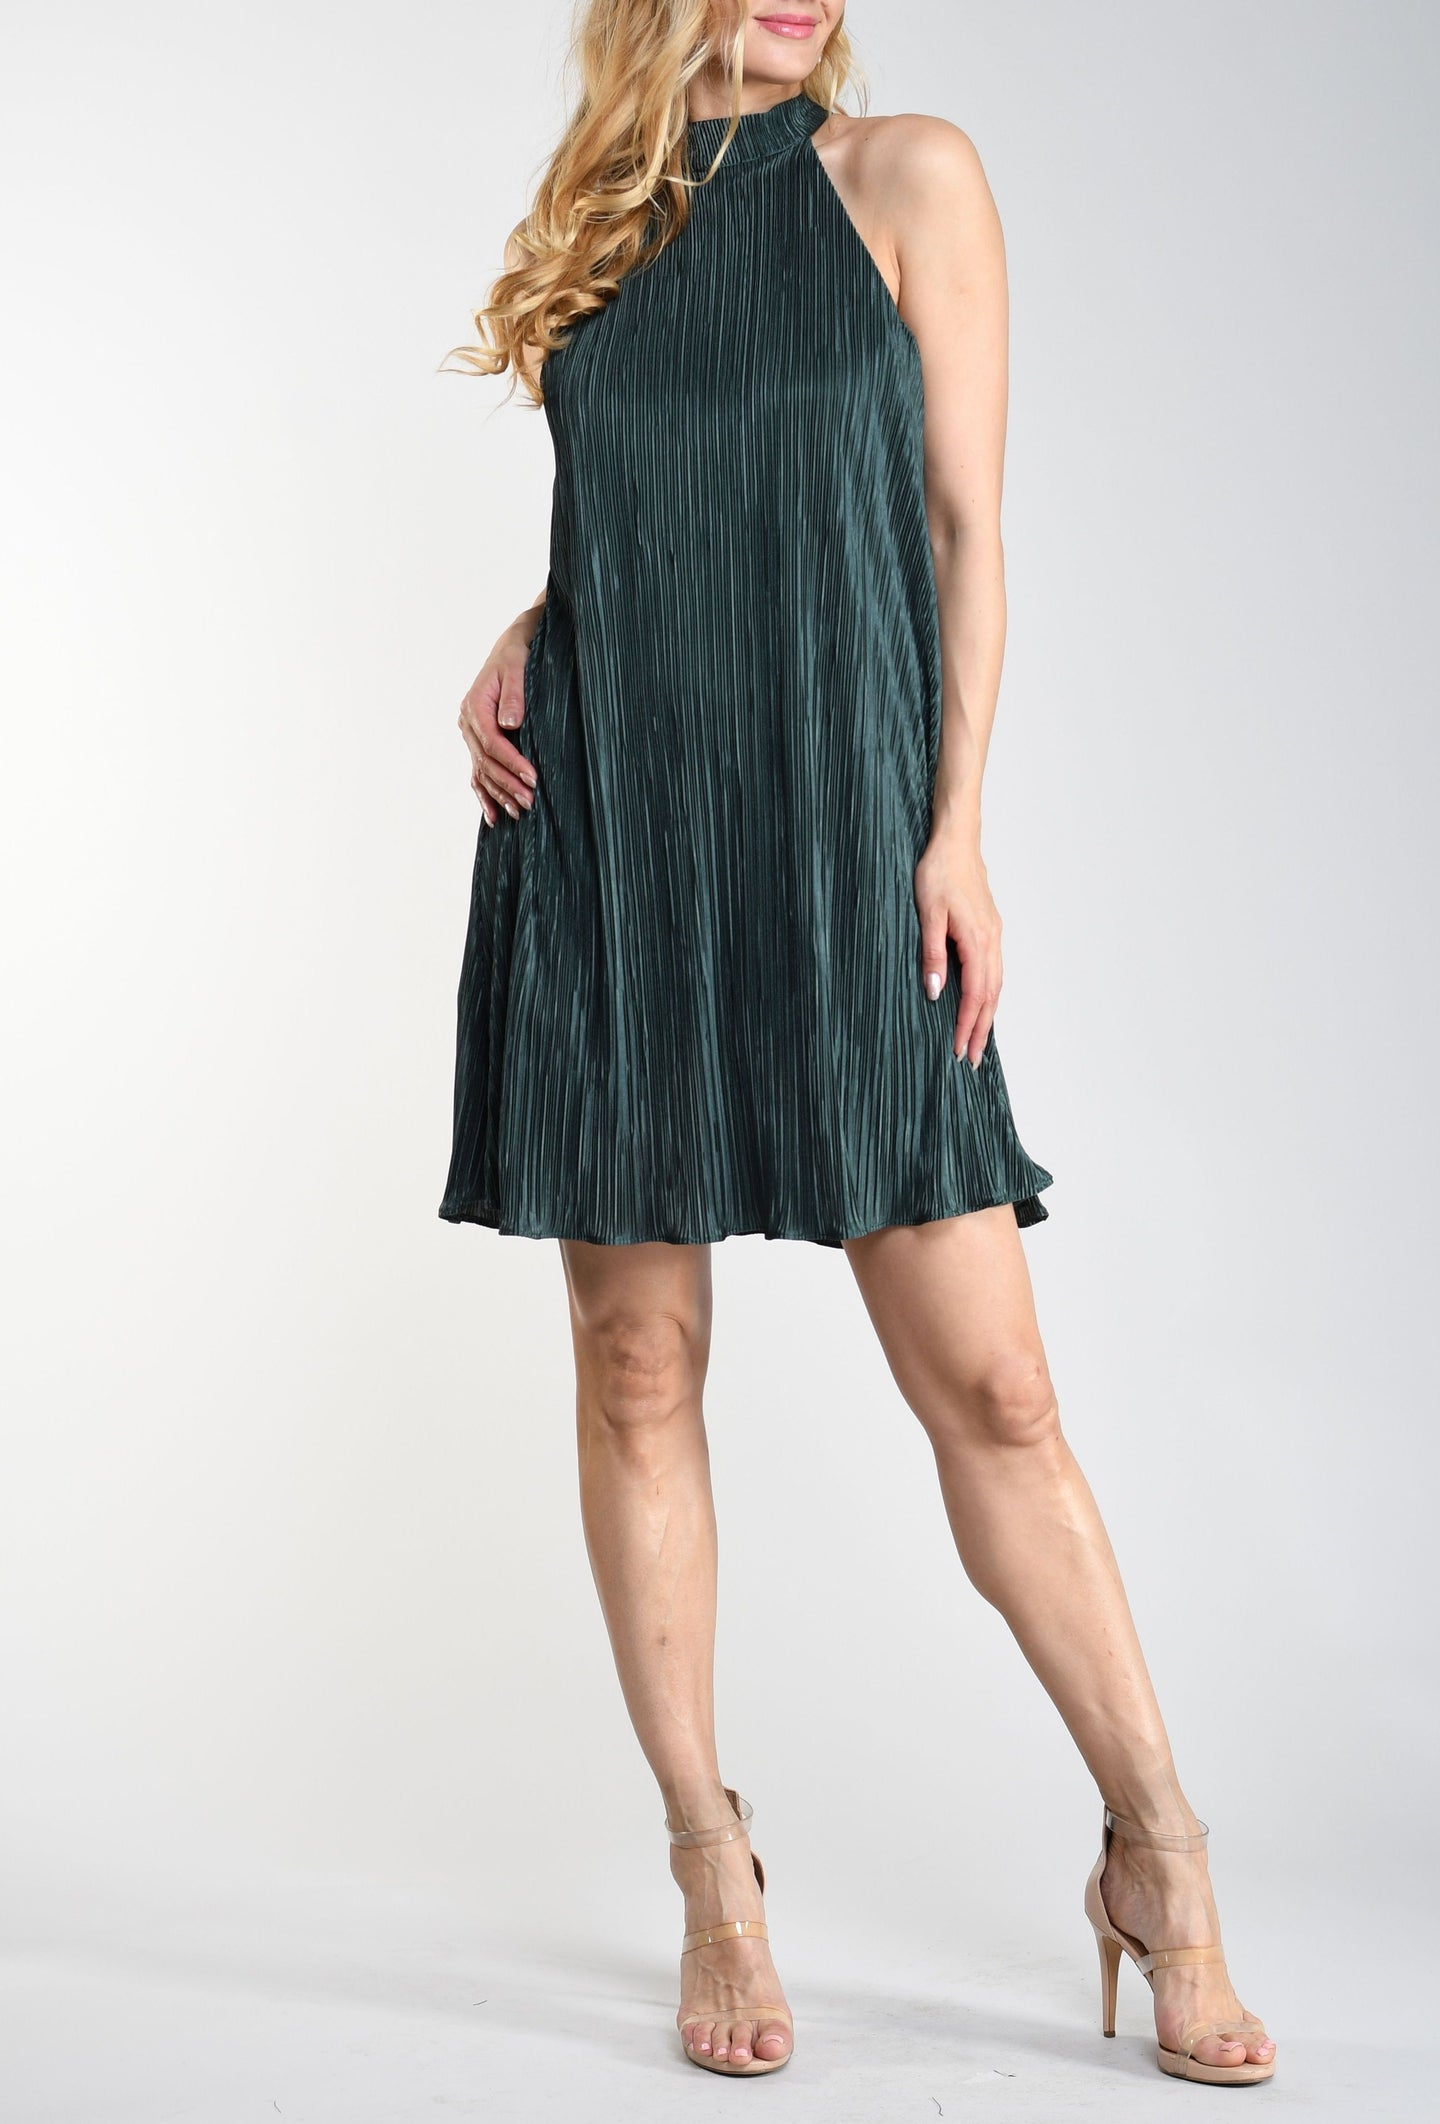 Green Halter Tie-Back Dress